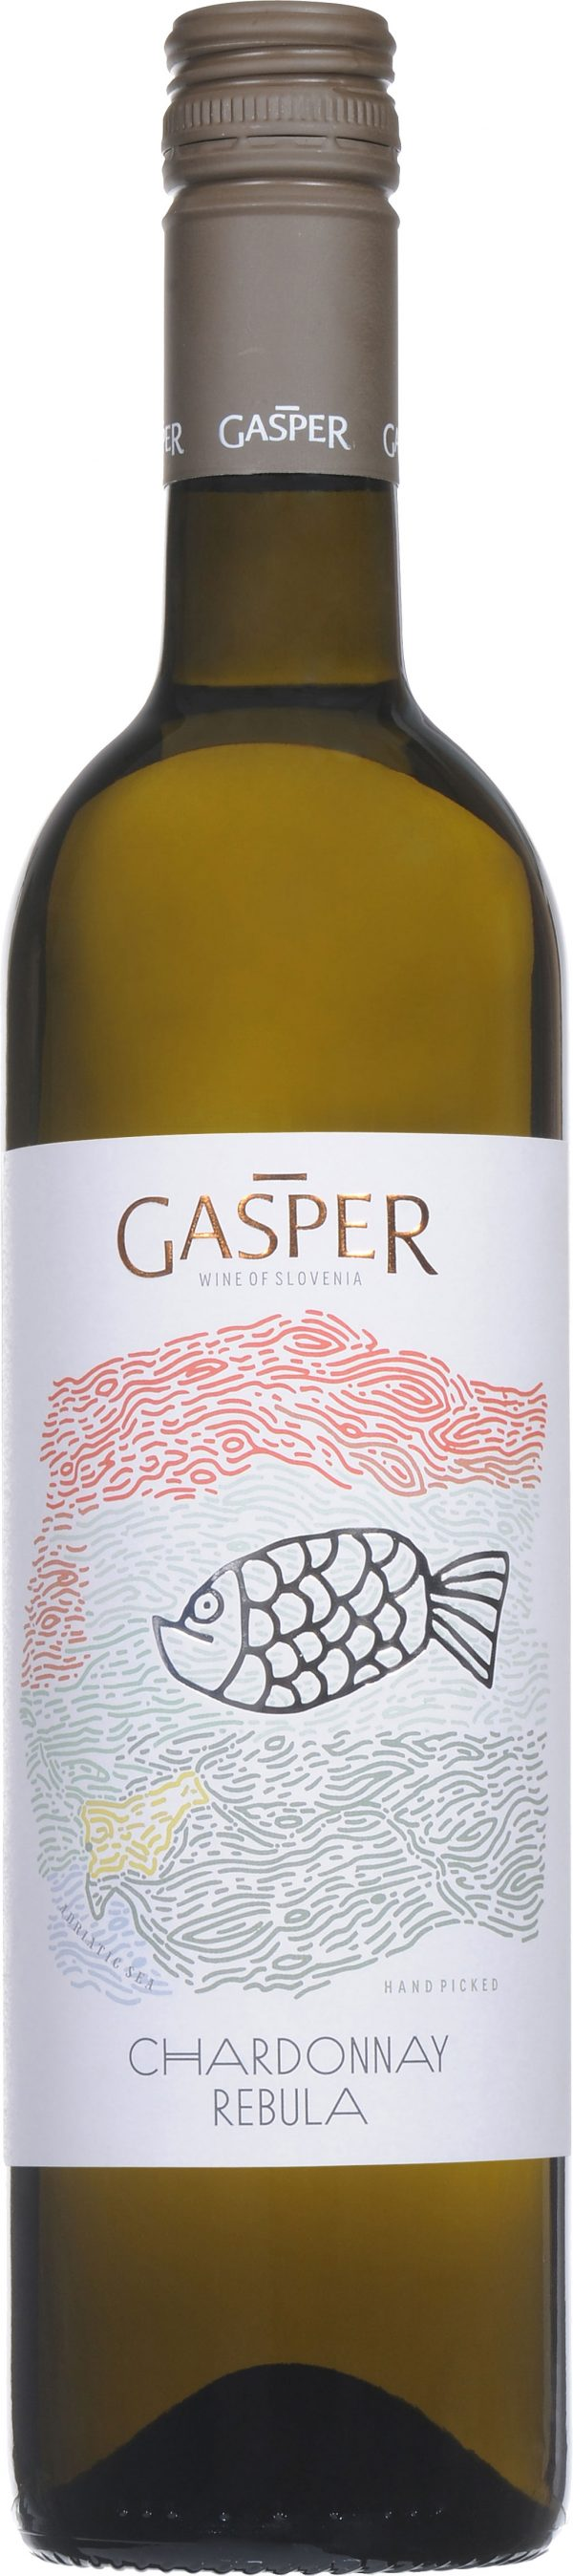 Gasper - Chardonnay Rebula 2018 75cl Bottle